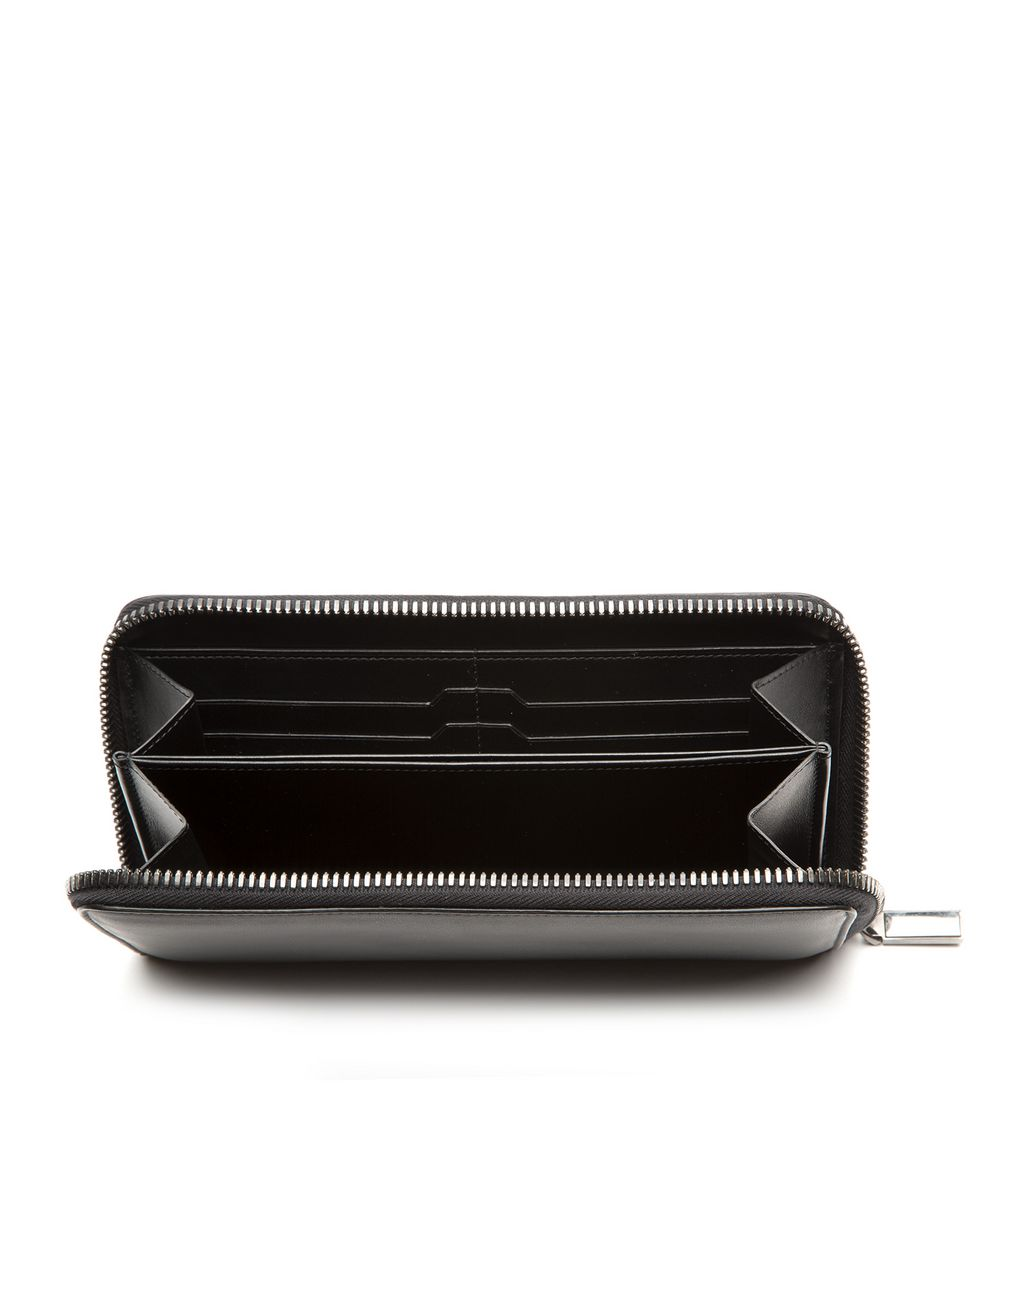 BRIONI Black Zip Around Wallet  Leather Goods Man d